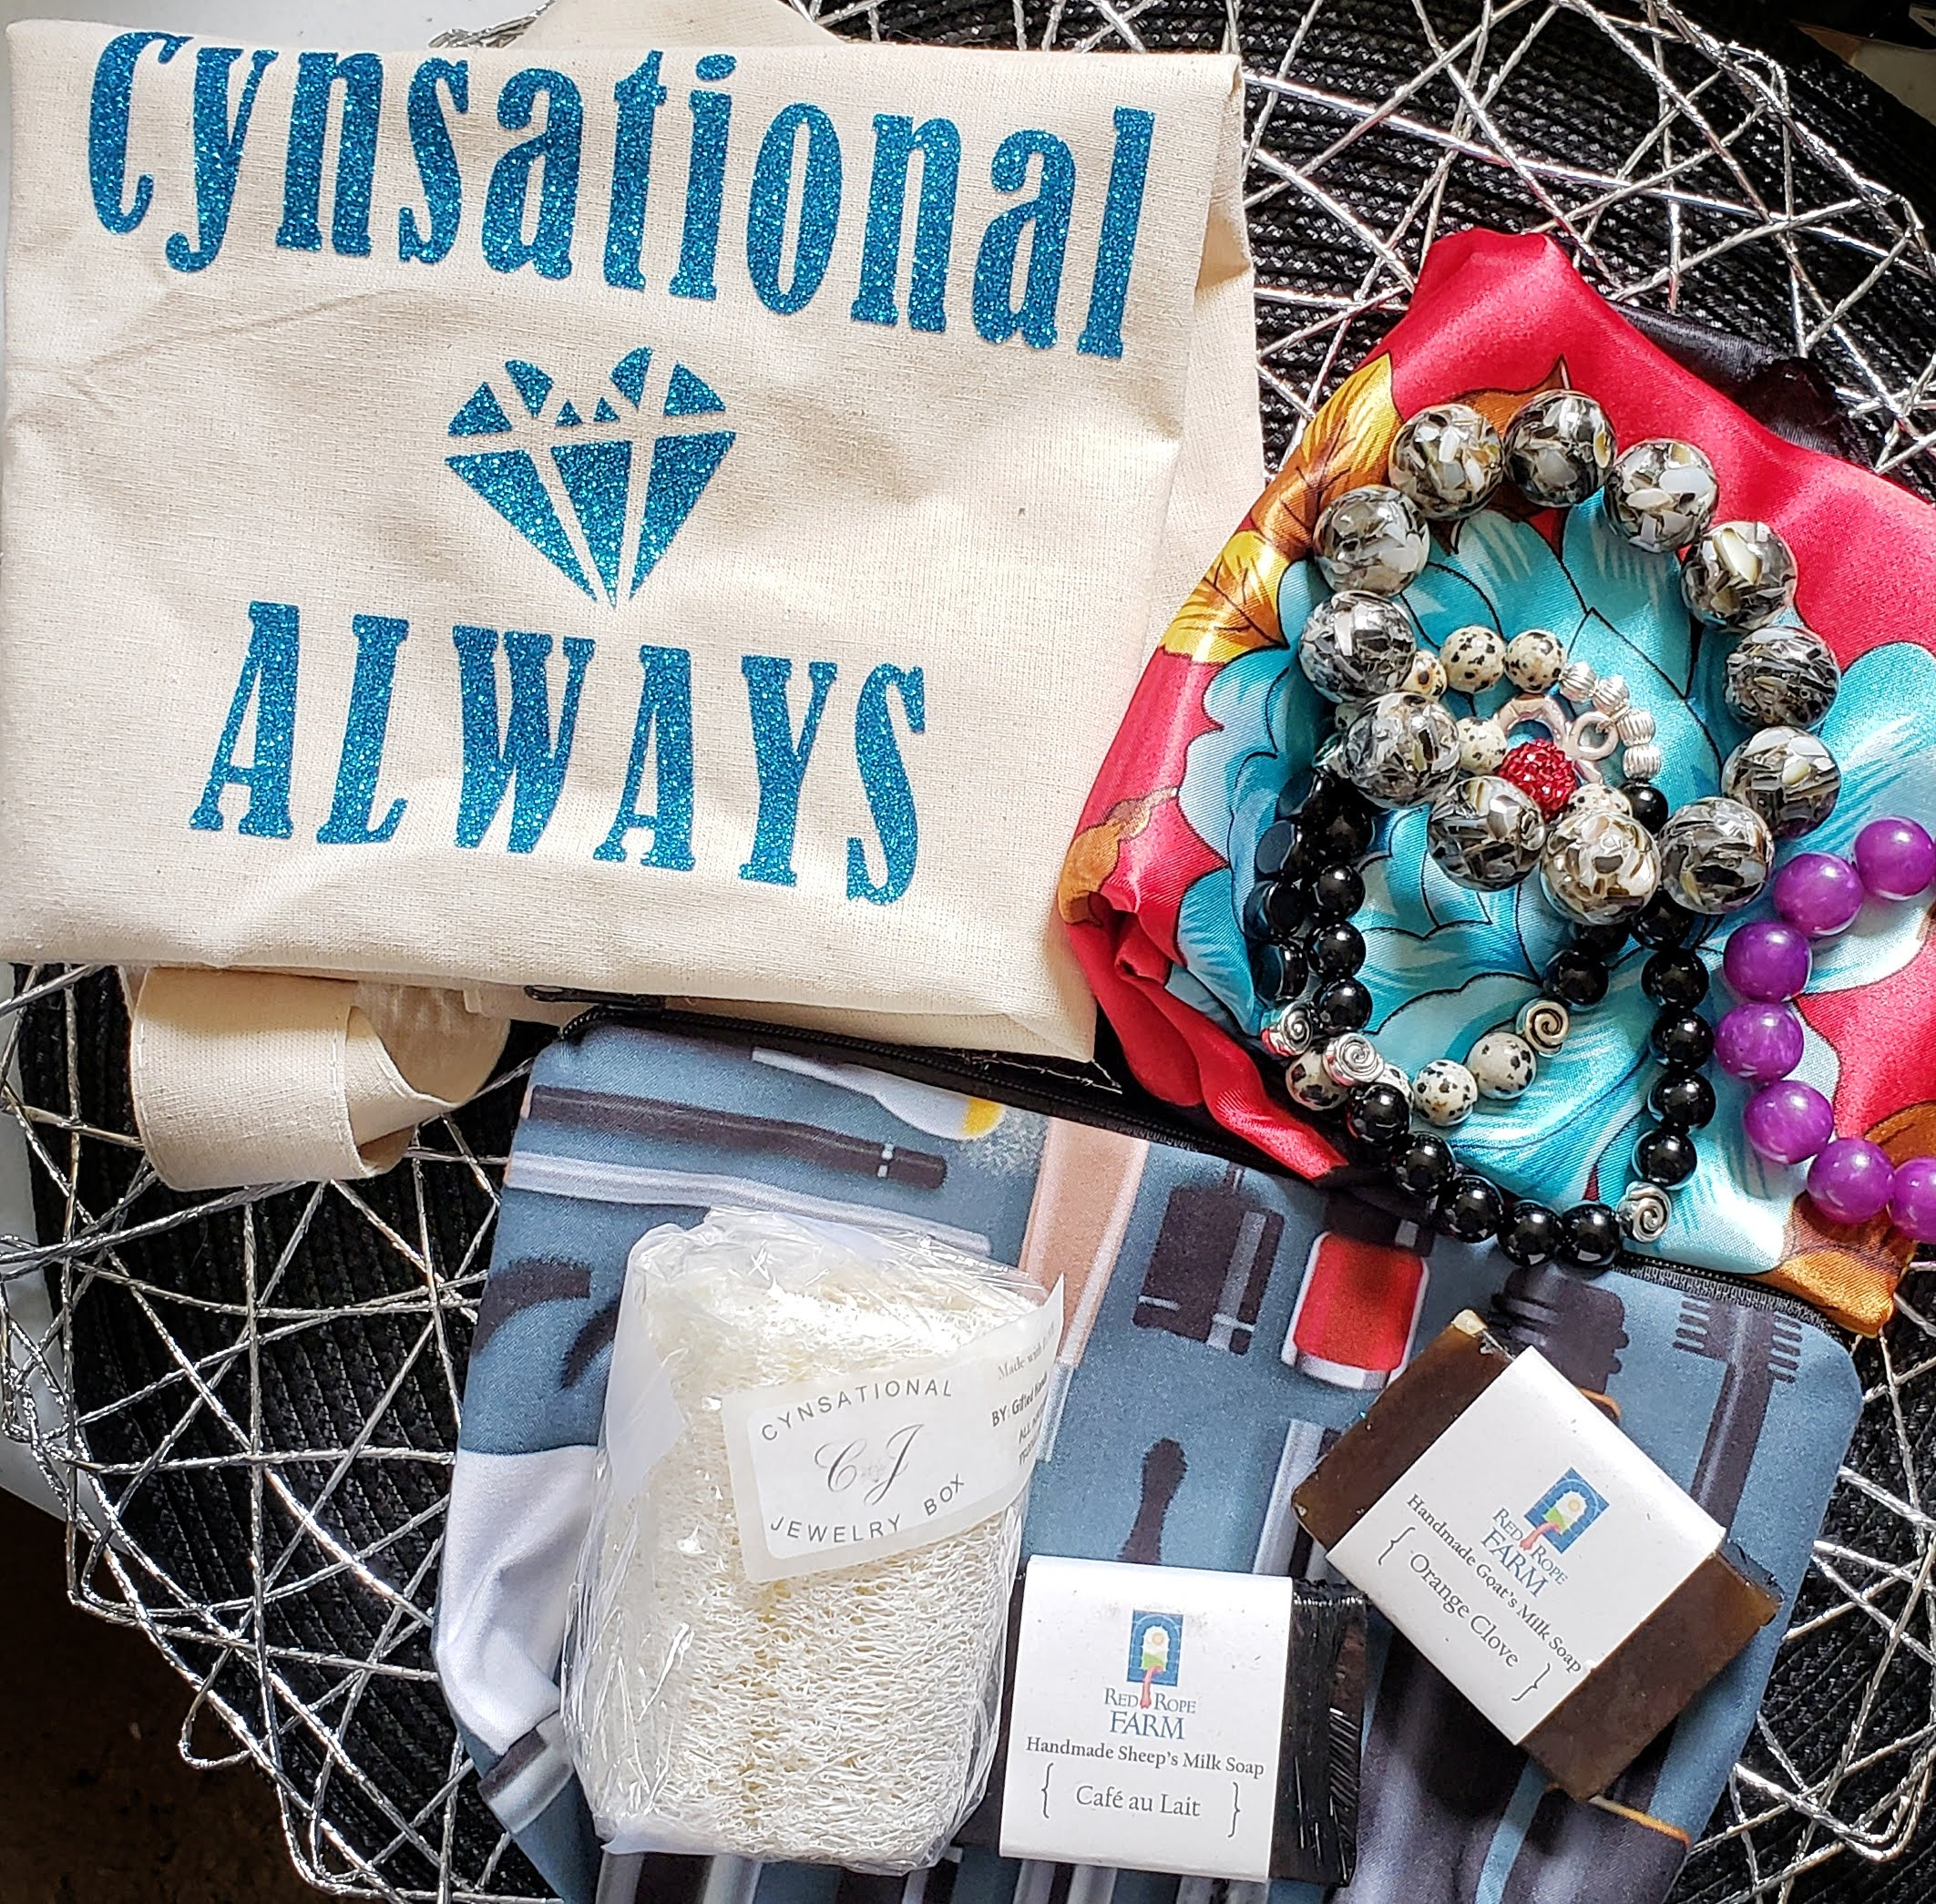 cynsational jewelry box, jewelry box, subscription box, beauty box, makeup box, monthly subscription box, makeup subscription box, jewelry subscription box, subscription box for kids, subscription box for women, subscription box for men, subscription boxes, rockbox, affordable jewelry, gifts for women, monthly subscription boxes, monthly jewelry subscription, unboxing, giveaway, cratejoy,